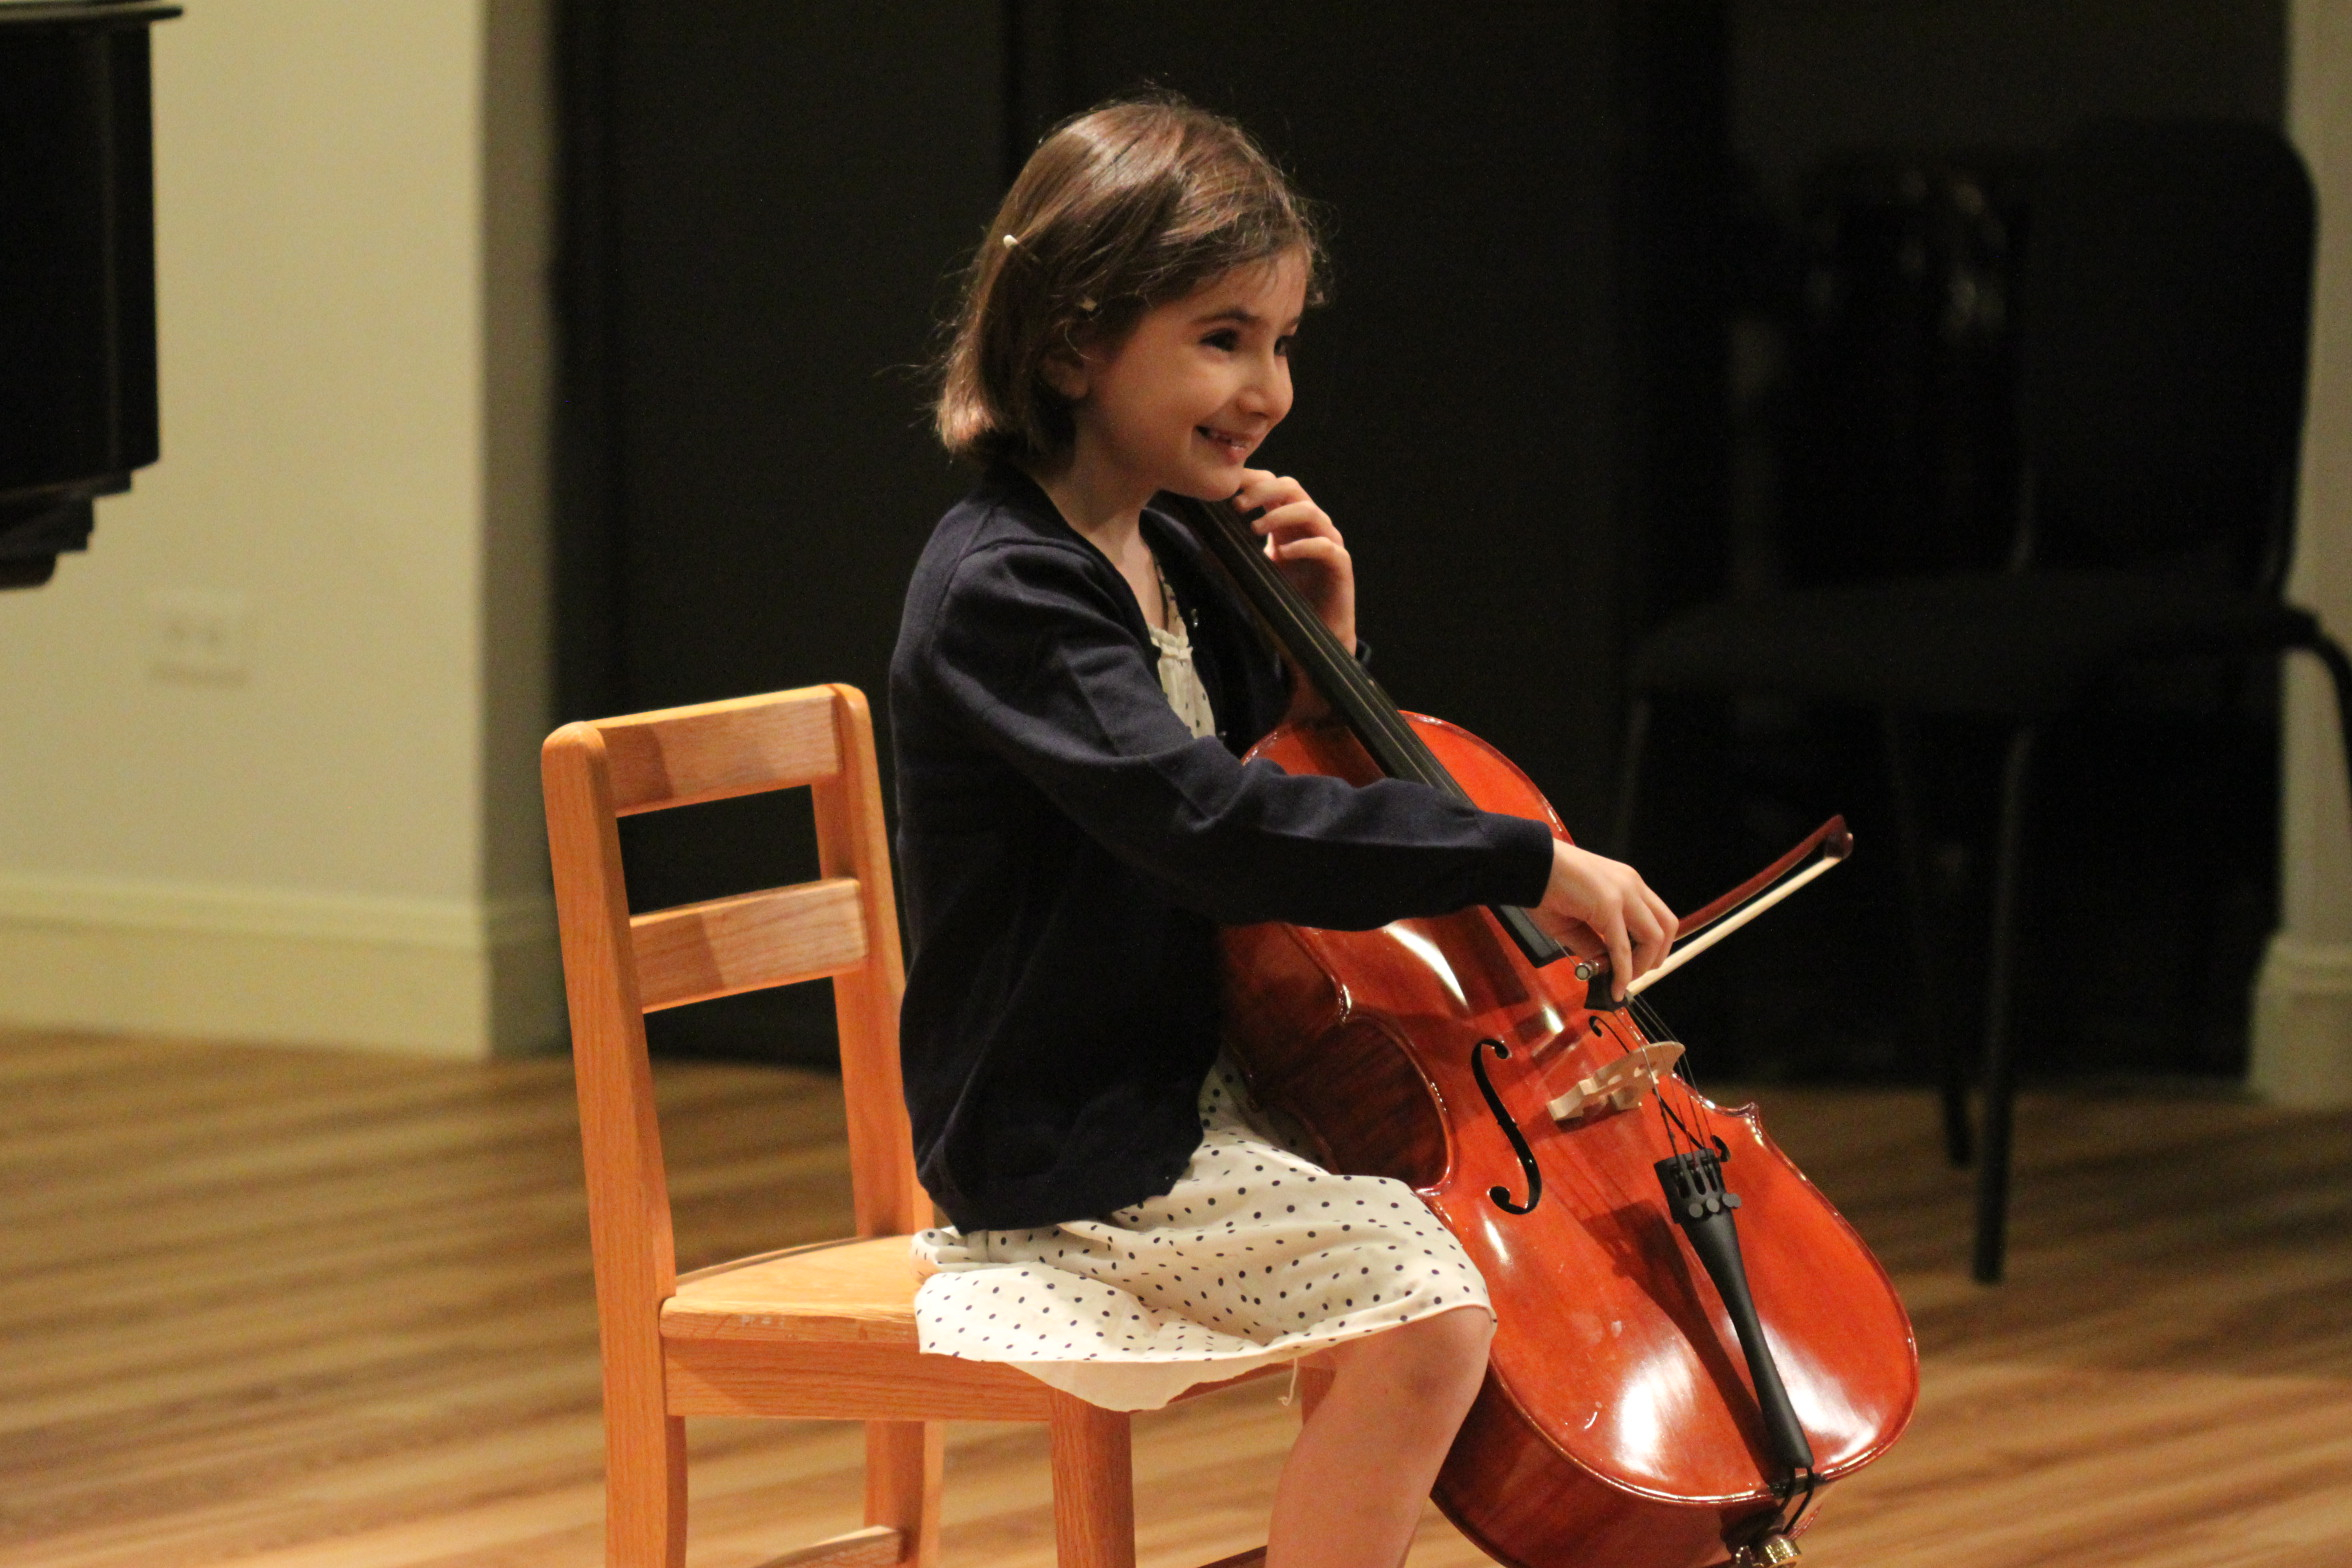 Poesis Music Academy offers studio lessons for violin, piano & cello